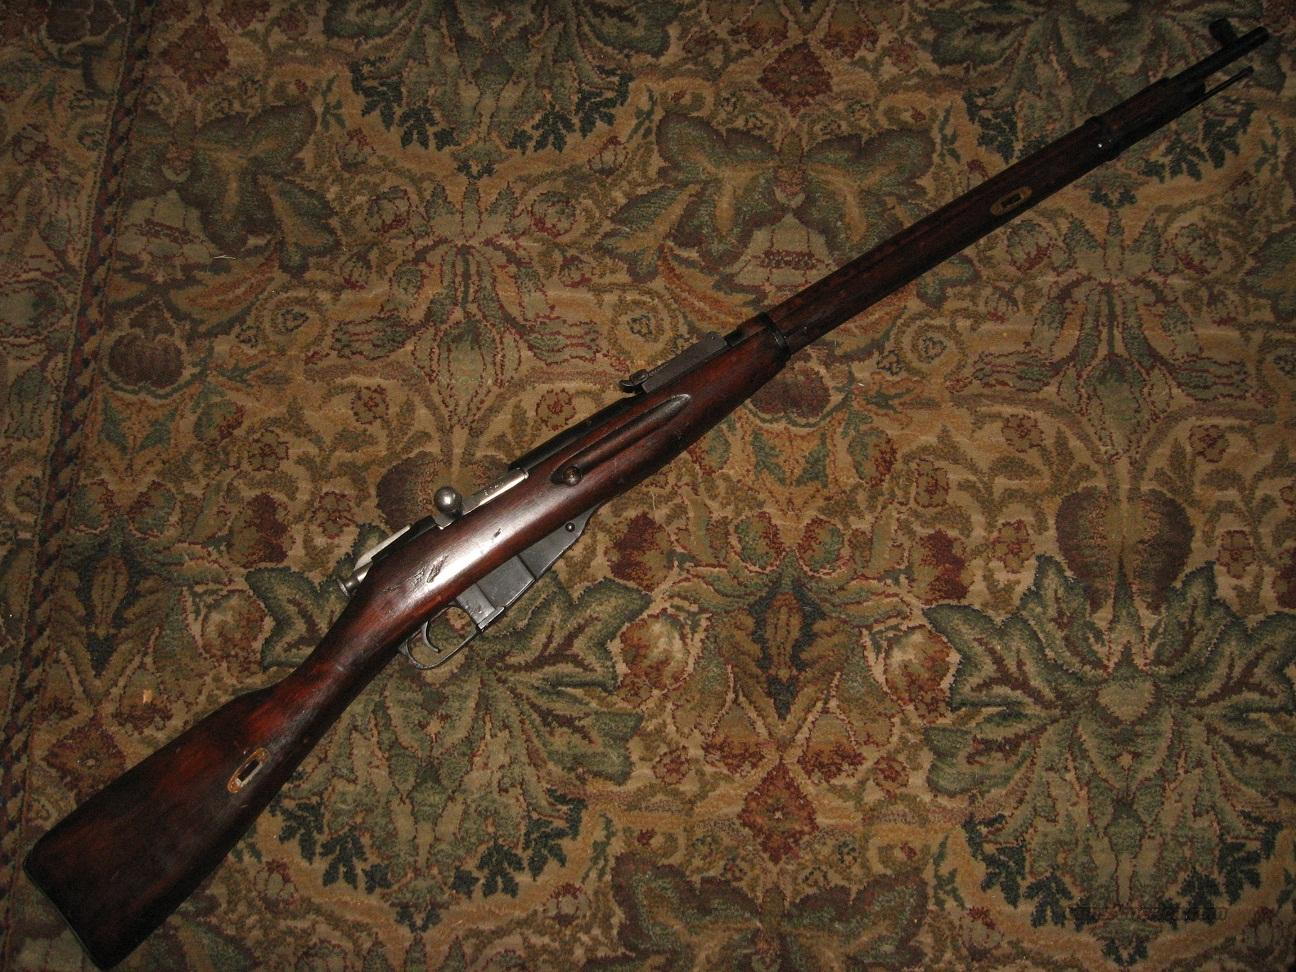 Matched numbers M91/30 dated 1940  Guns > Rifles > Military Misc. Rifles Non-US > Other